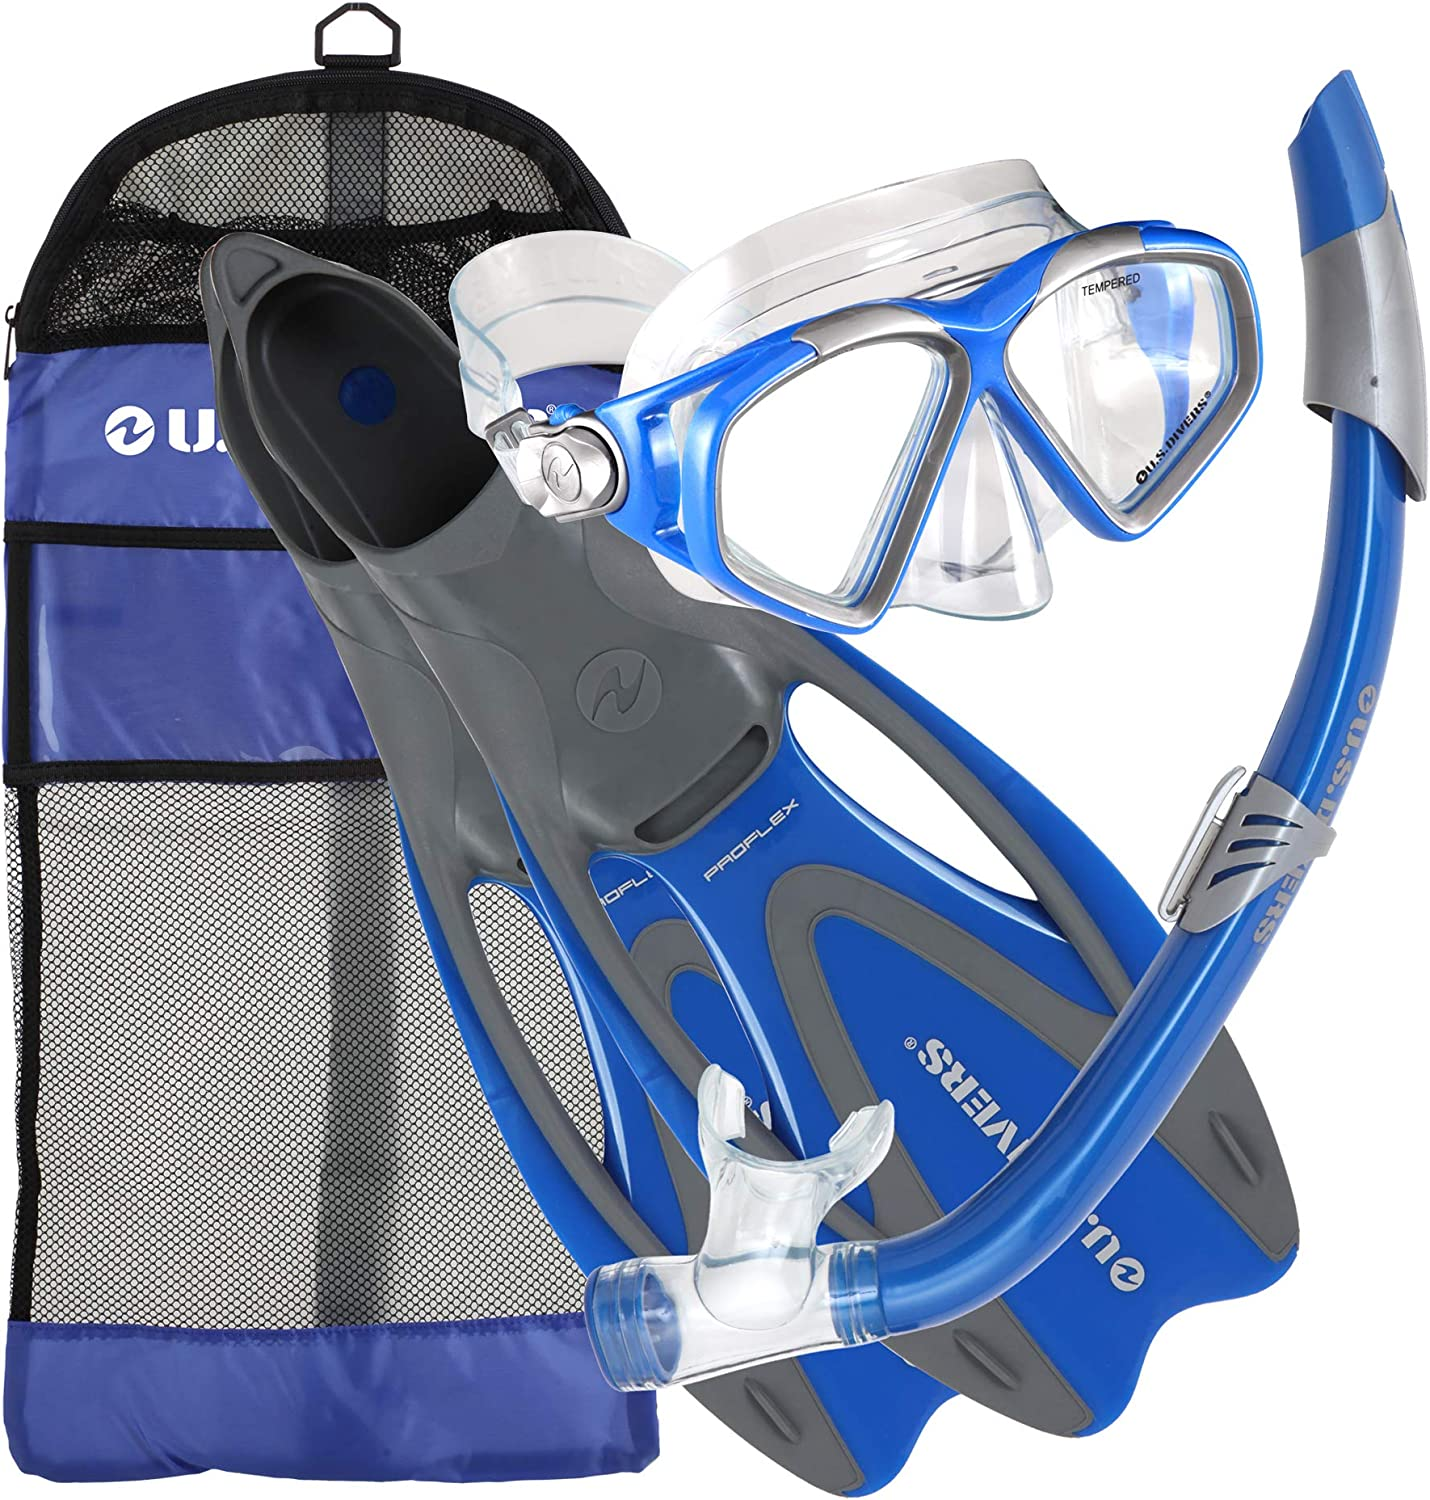 U.S. Divers Cozumel Seabreeze Adult Snorkeling Combo Set with Adjustable Mask, Snorkel, Medium/Large Fins (8-9.5), and Travel Bag, Blue